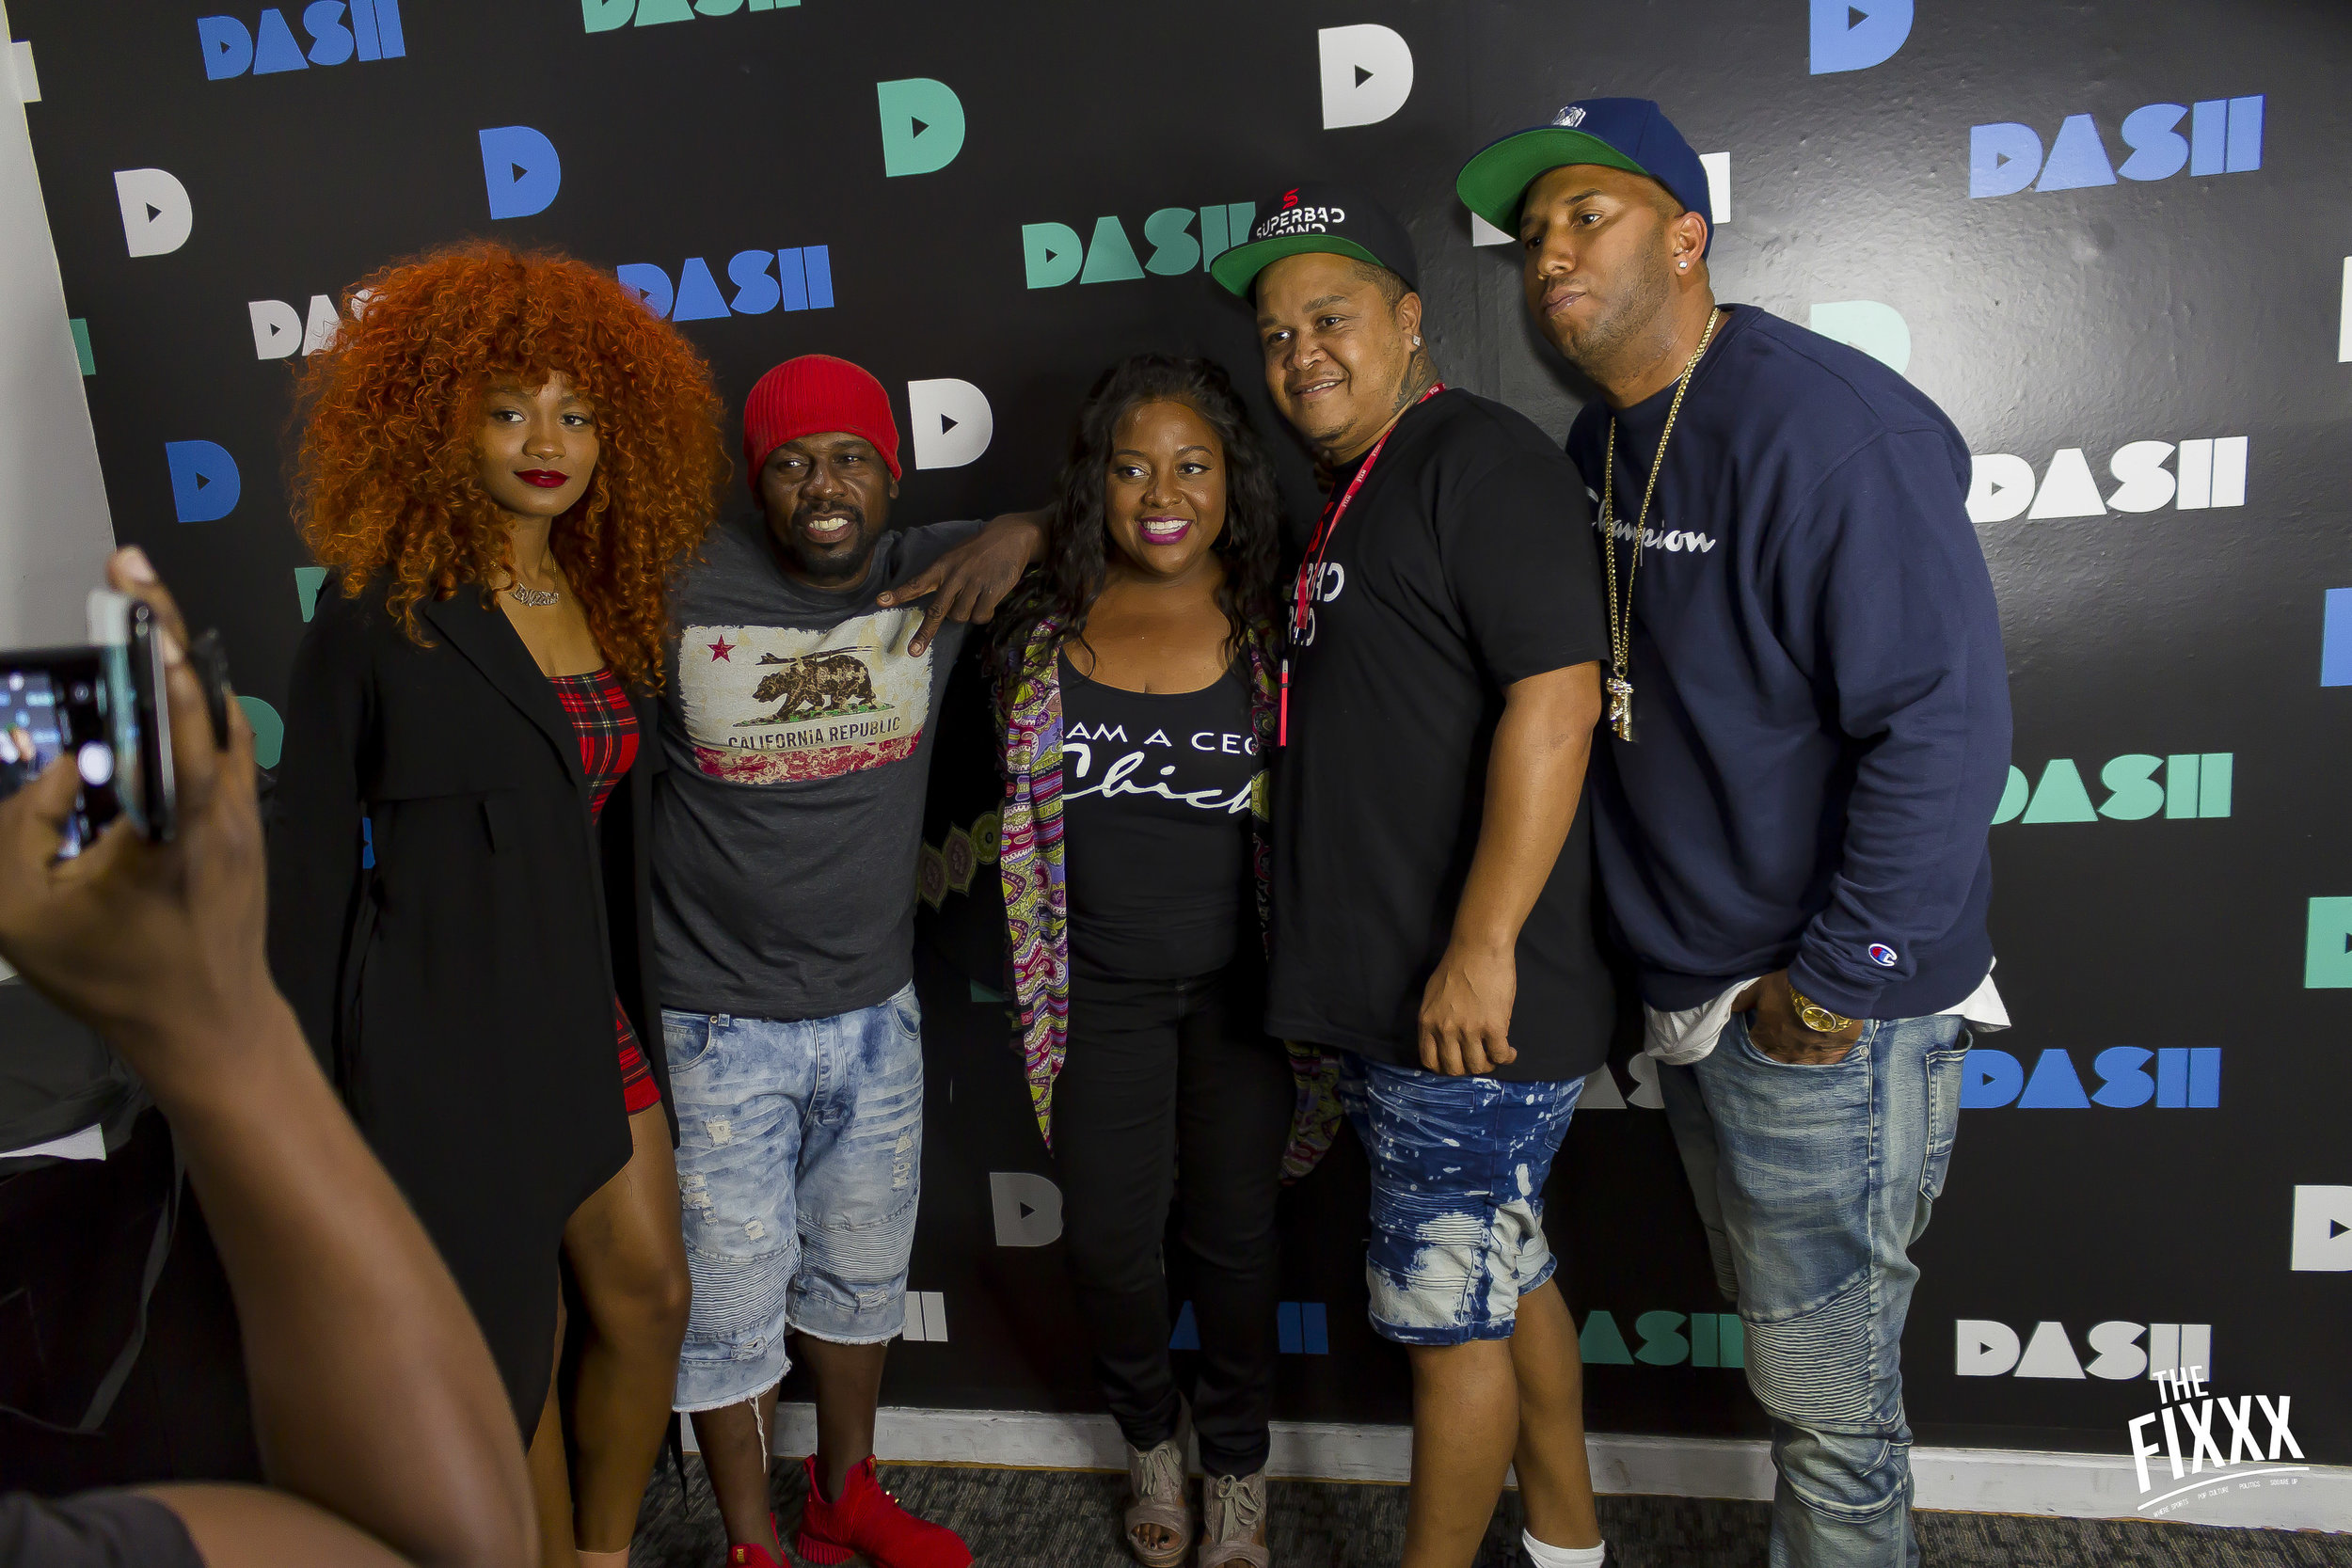 The Fixxx on Dash Radio - 08-31-18_38.jpg